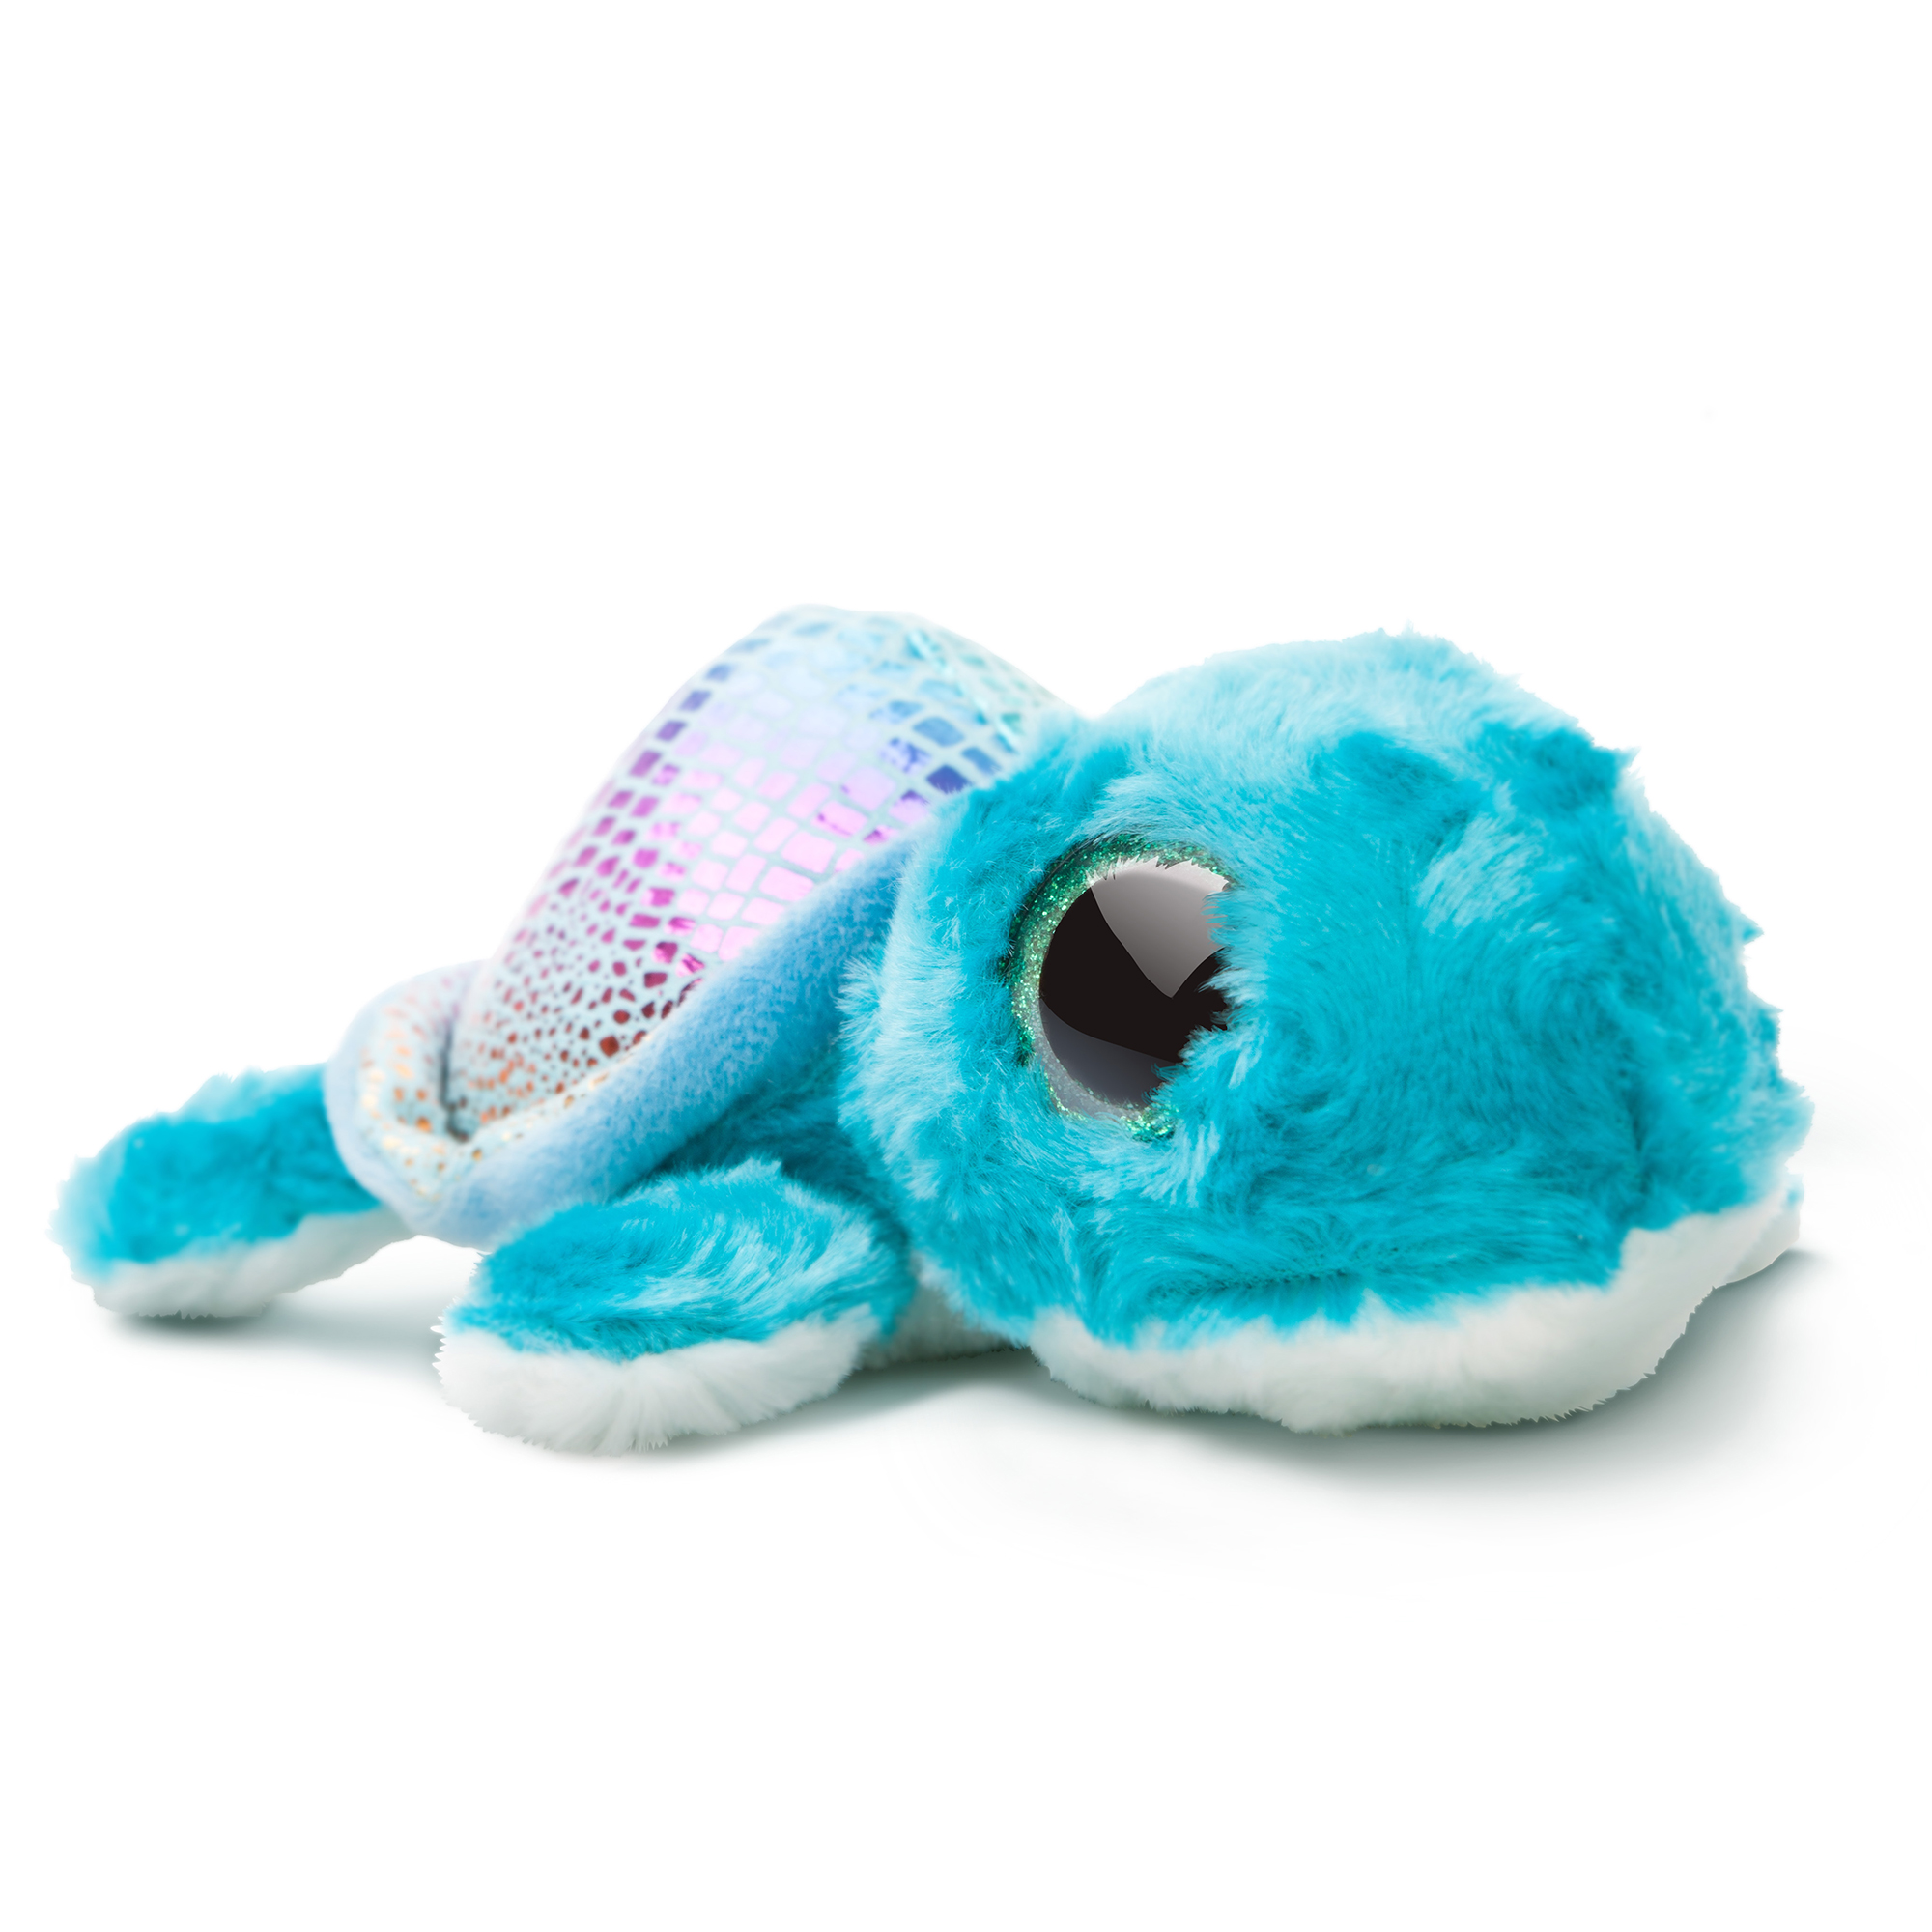 YooHoo & Friends 8-Inch Shellee Turtle Aqua